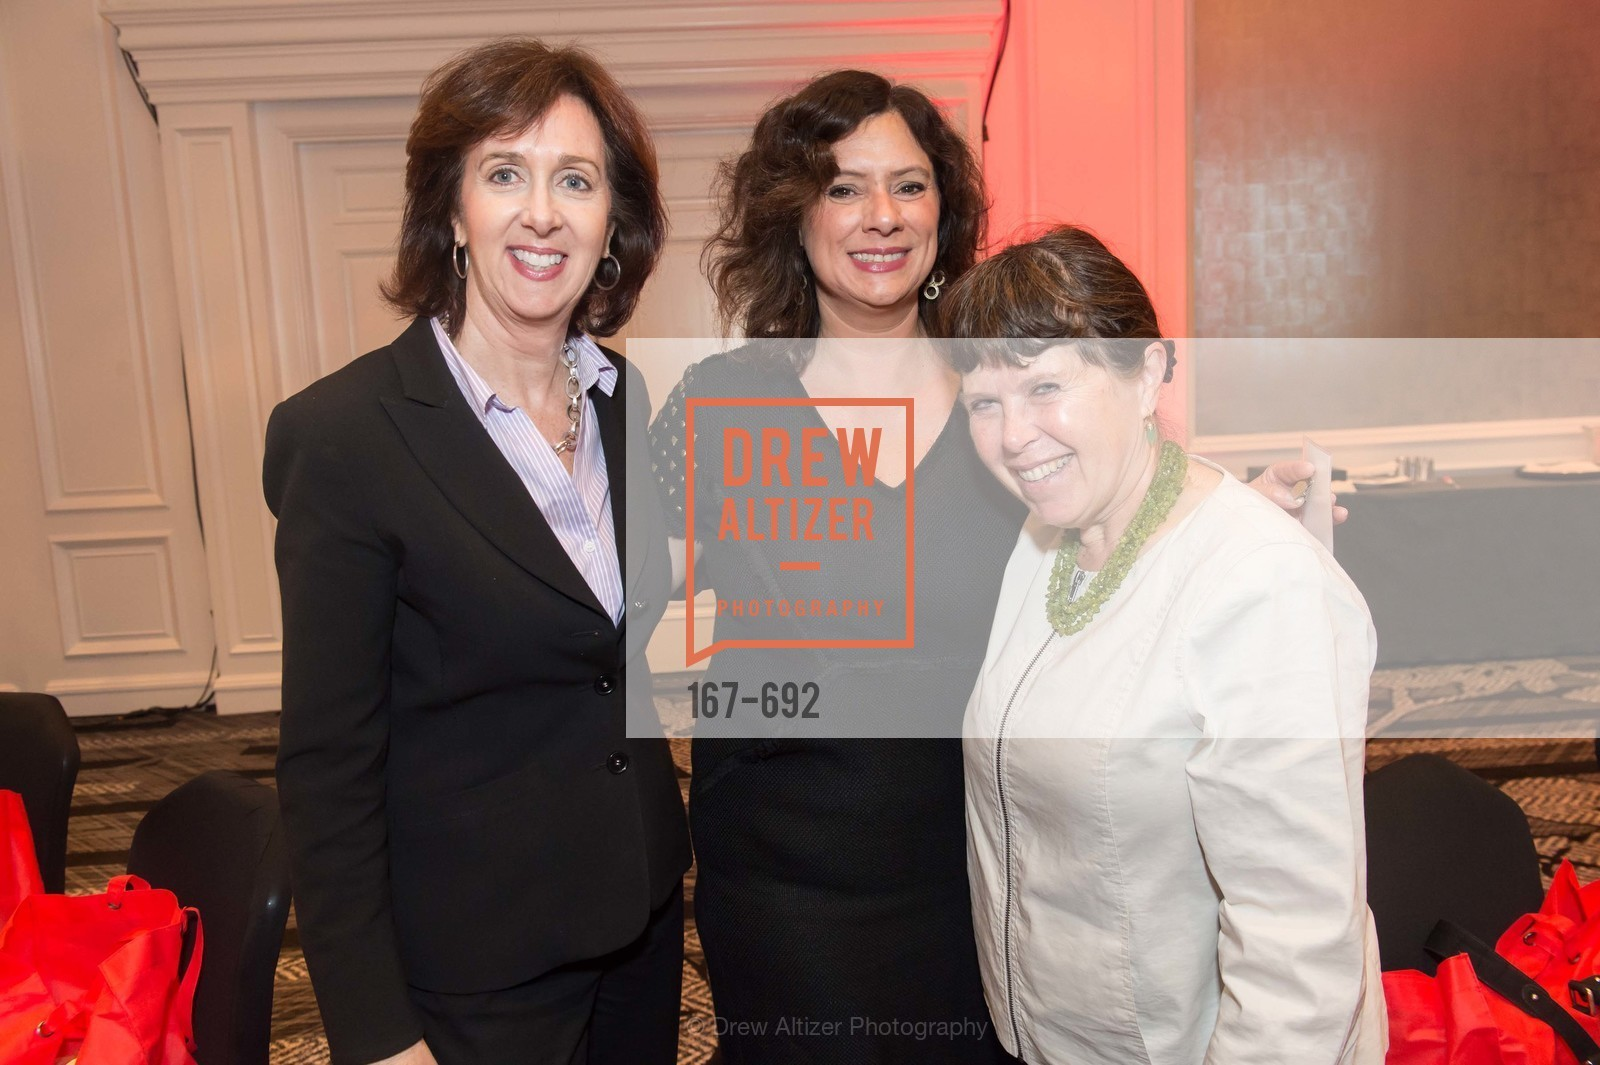 Deborah Wright, Cathy Nevolo, Andrea Dino, 2015 GoRed for Women Luncheon, US, May 2nd, 2015,Drew Altizer, Drew Altizer Photography, full-service agency, private events, San Francisco photographer, photographer california